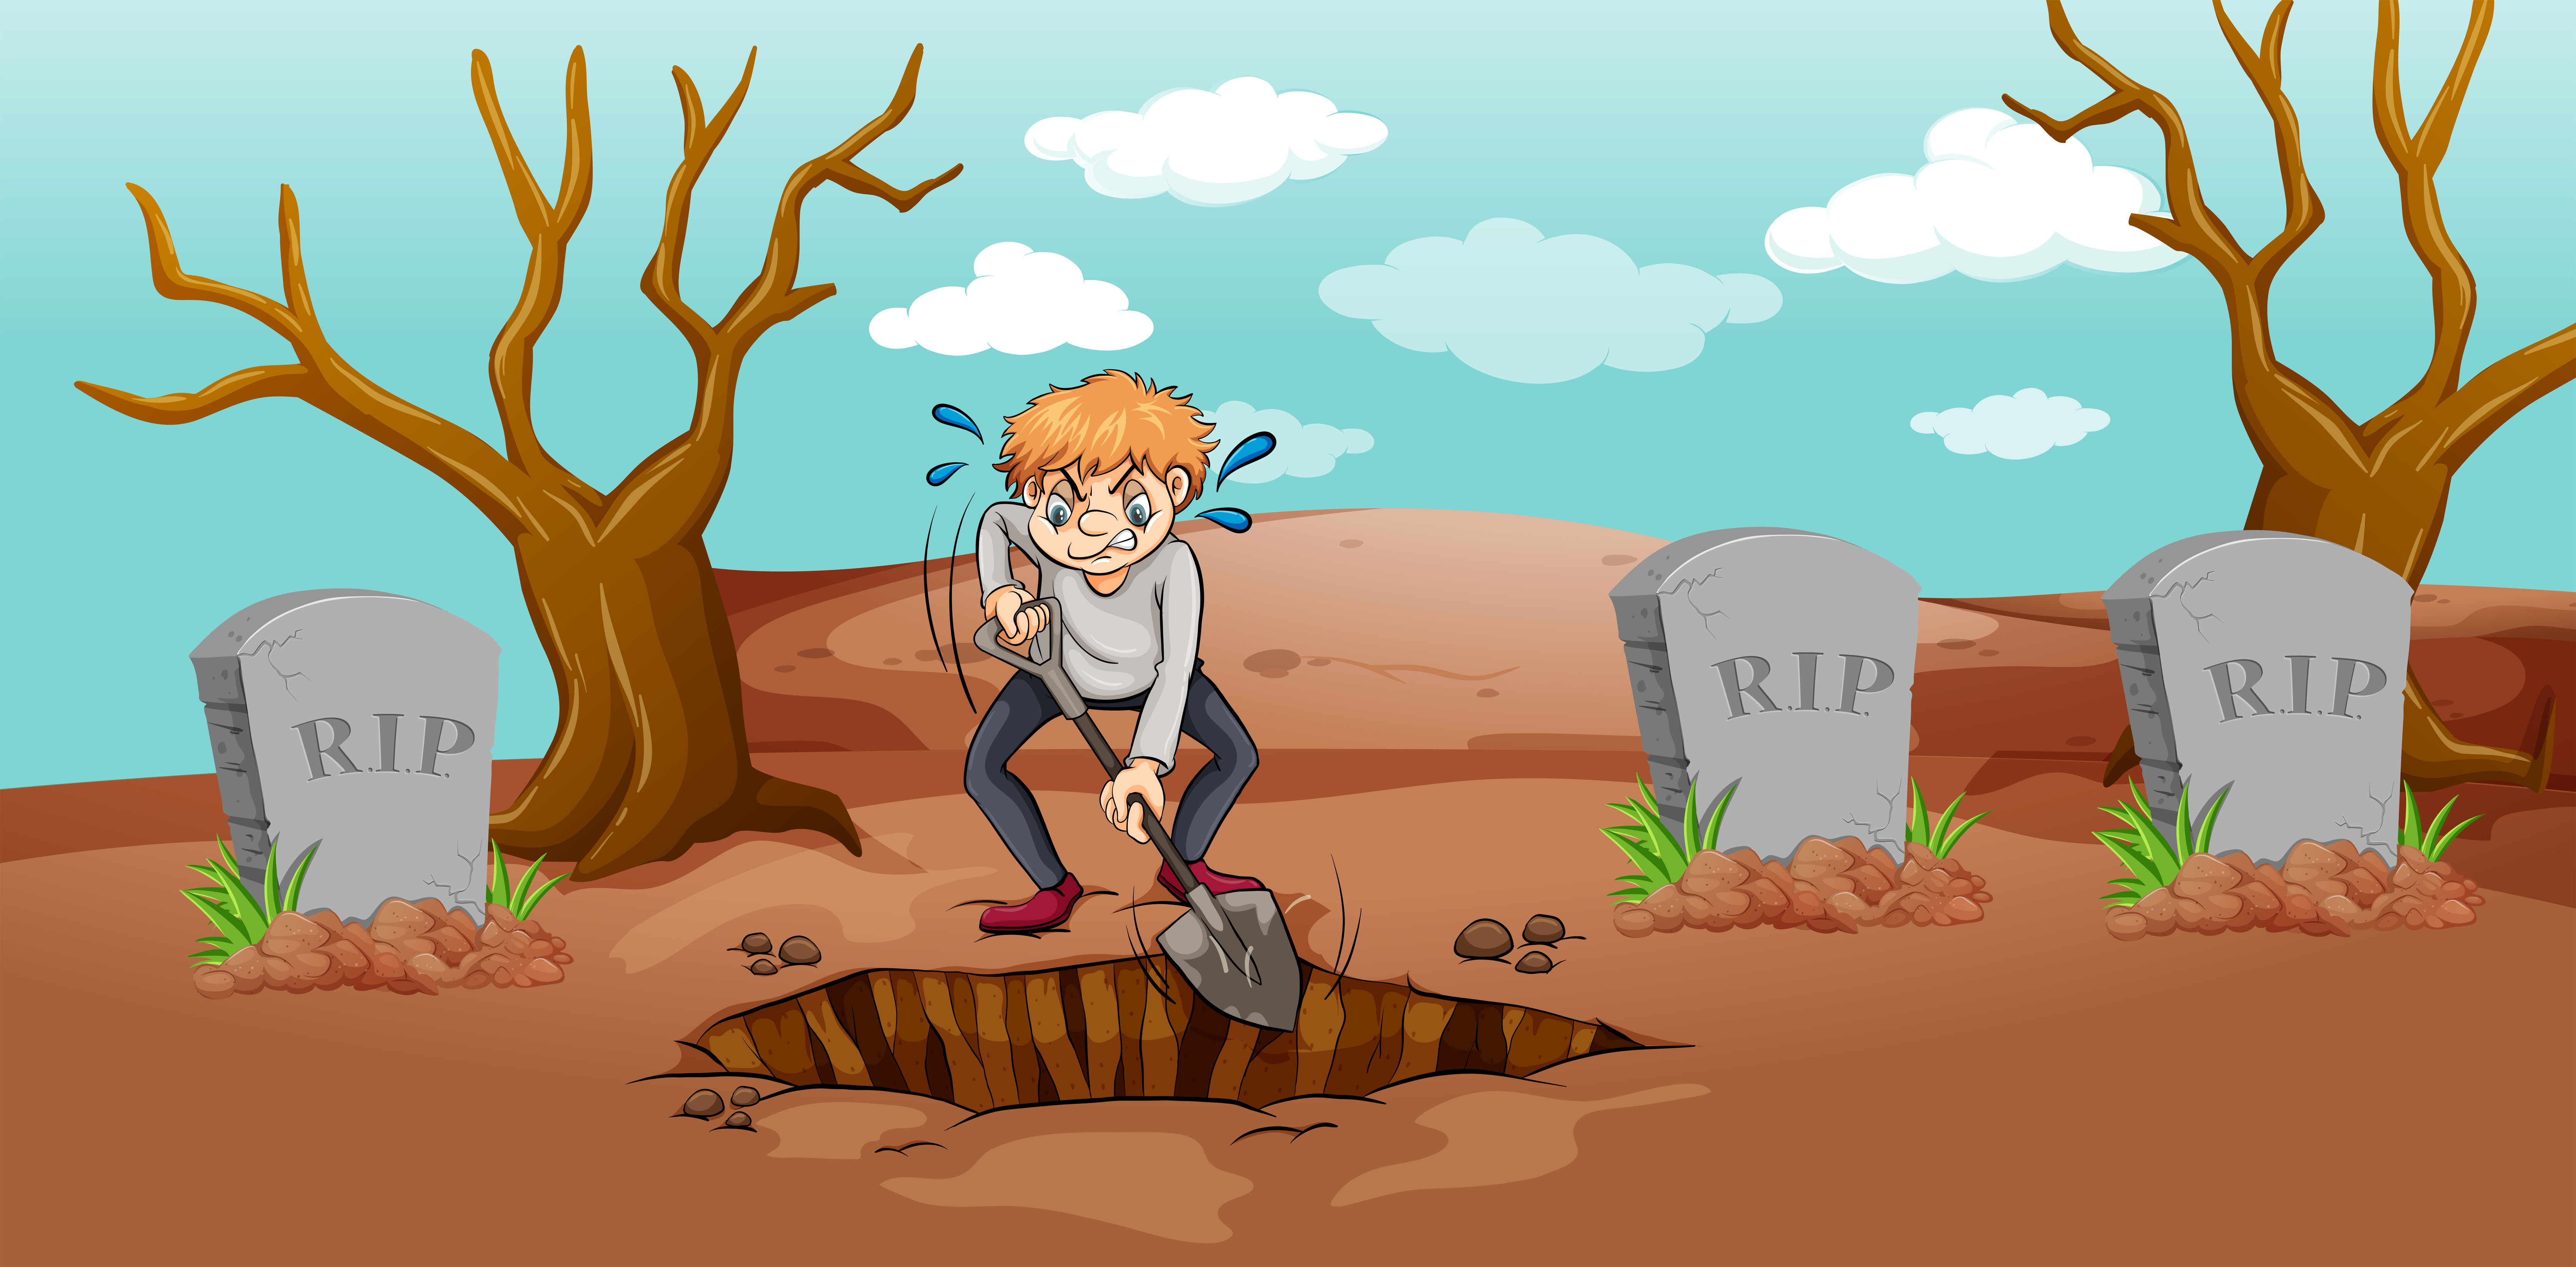 30 Digging A Grave High Res Illustrations - Getty Images